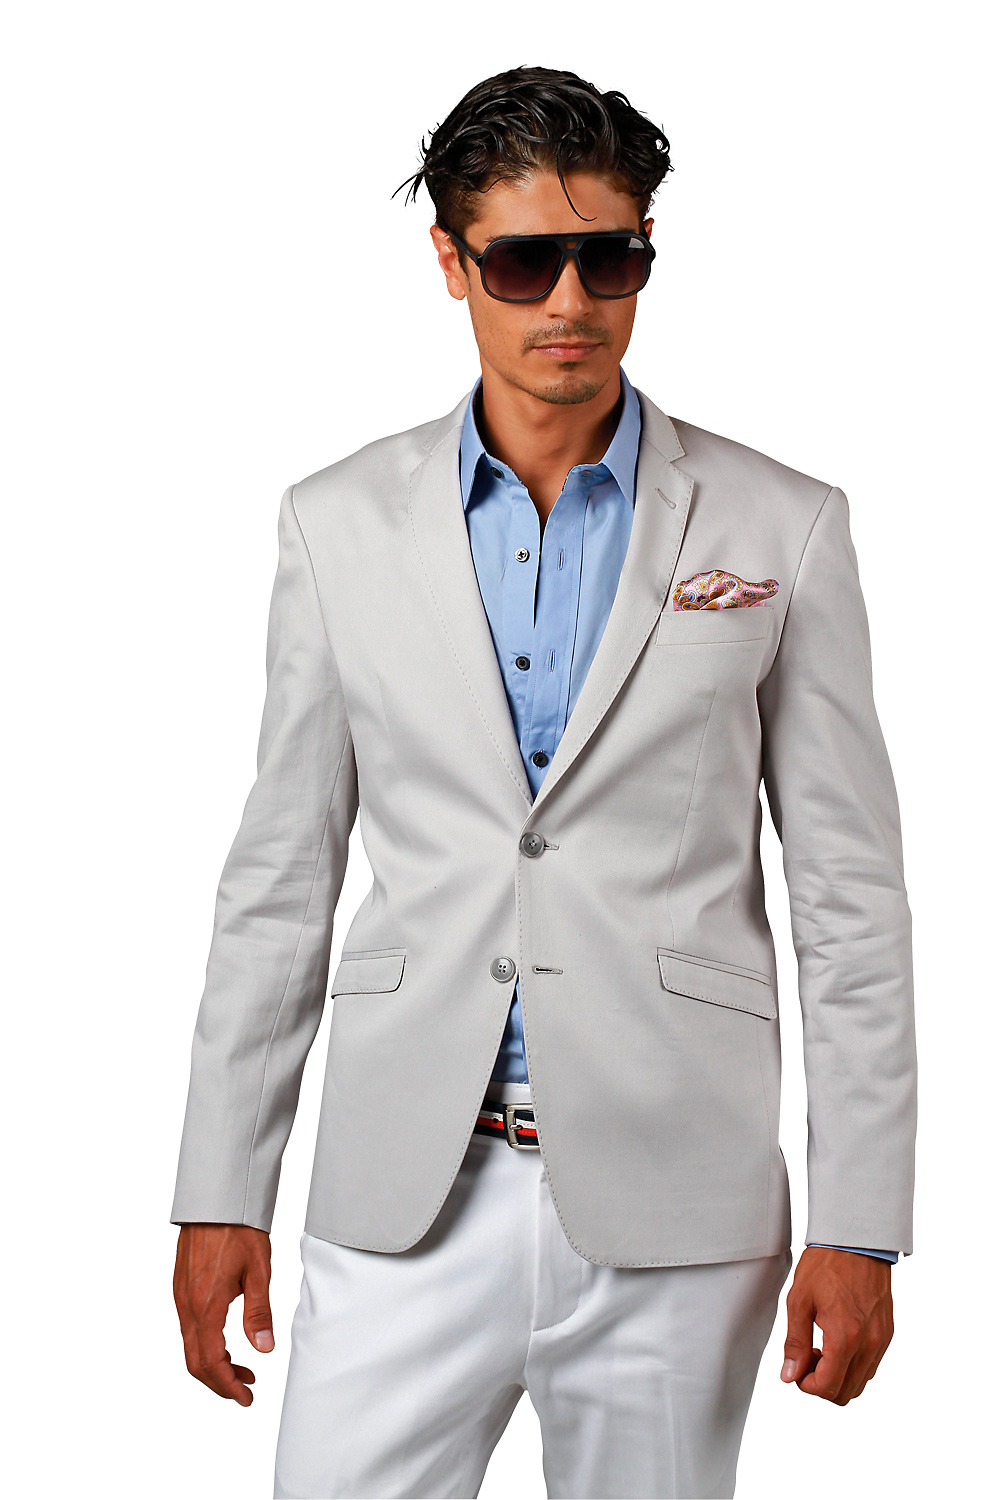 Montagio Custom Tailoring Sydney Tailor Made Mens Suits